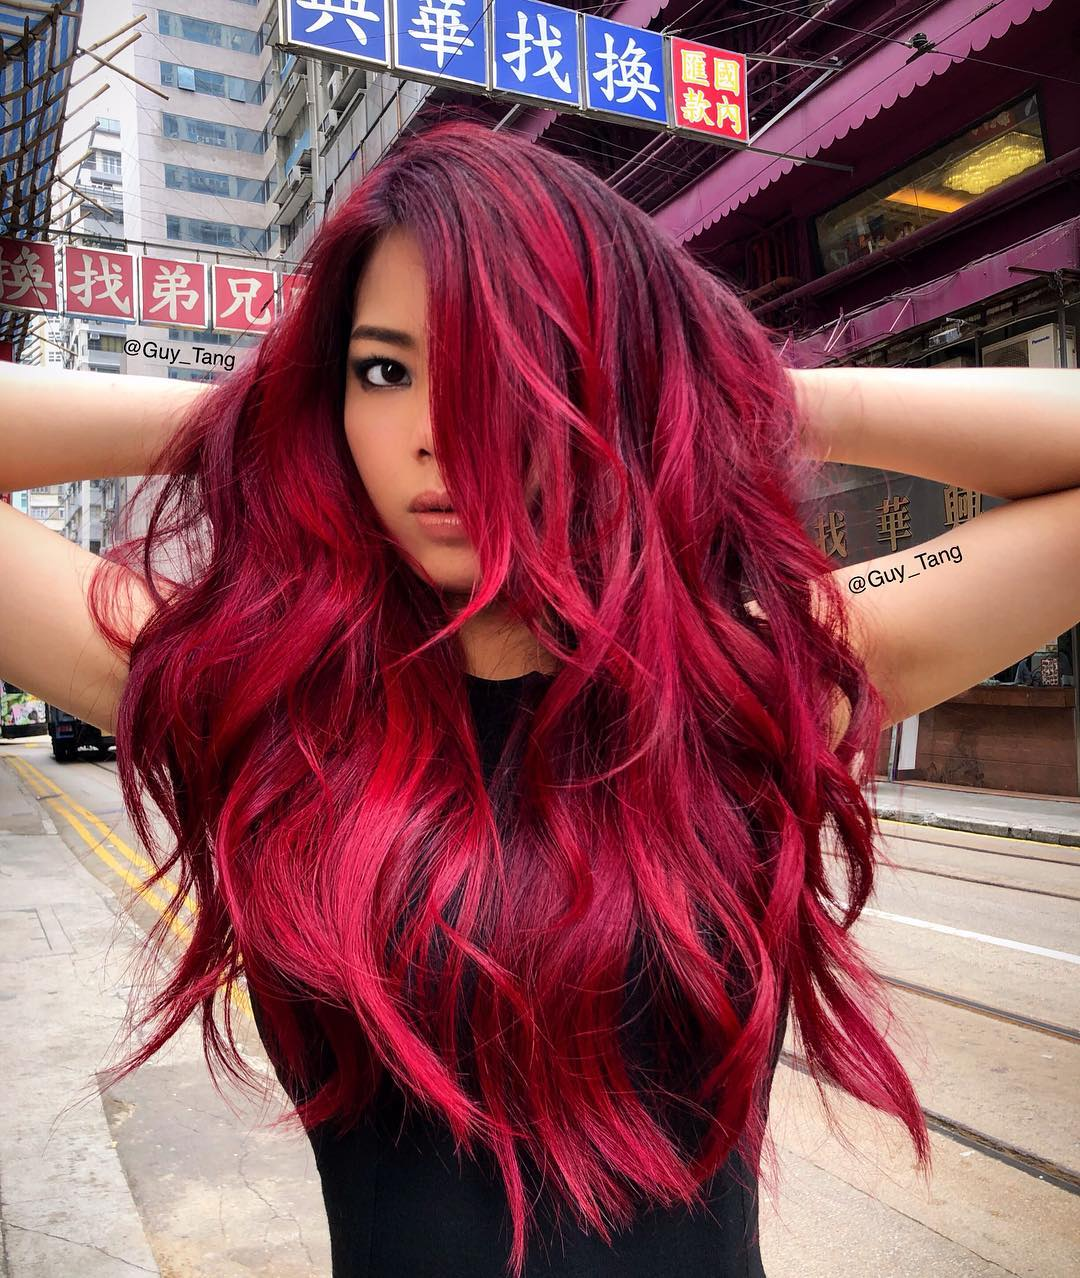 latest hair colour styles tang spills on the trends in hair colour hong 4960 | 15144943 30603229 225382018043456 9059097985983447040 n